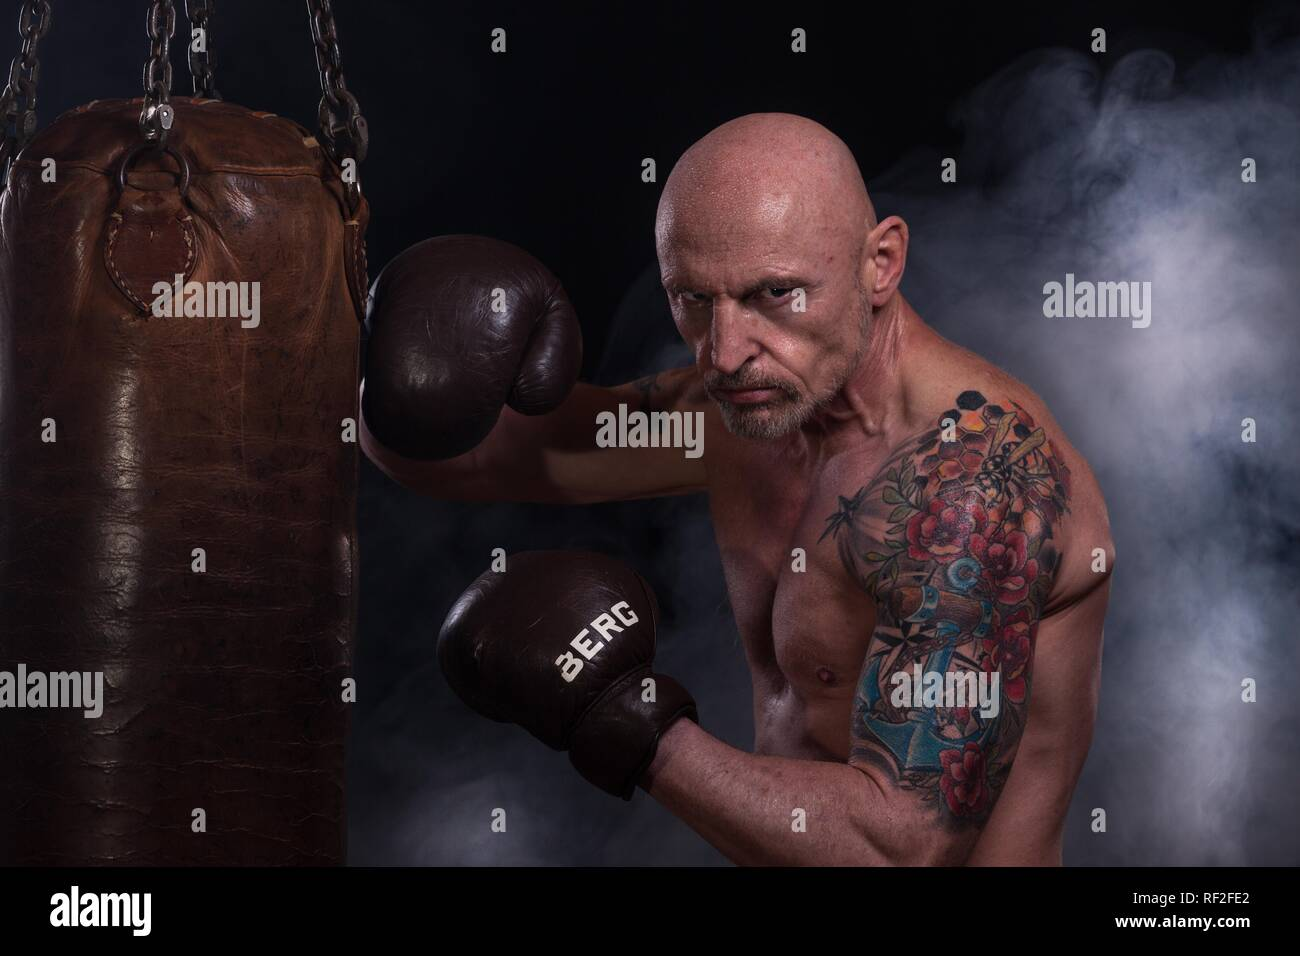 Man, bald and tattooed, with boxing gloves, trained on punching bag, Germany - Stock Image